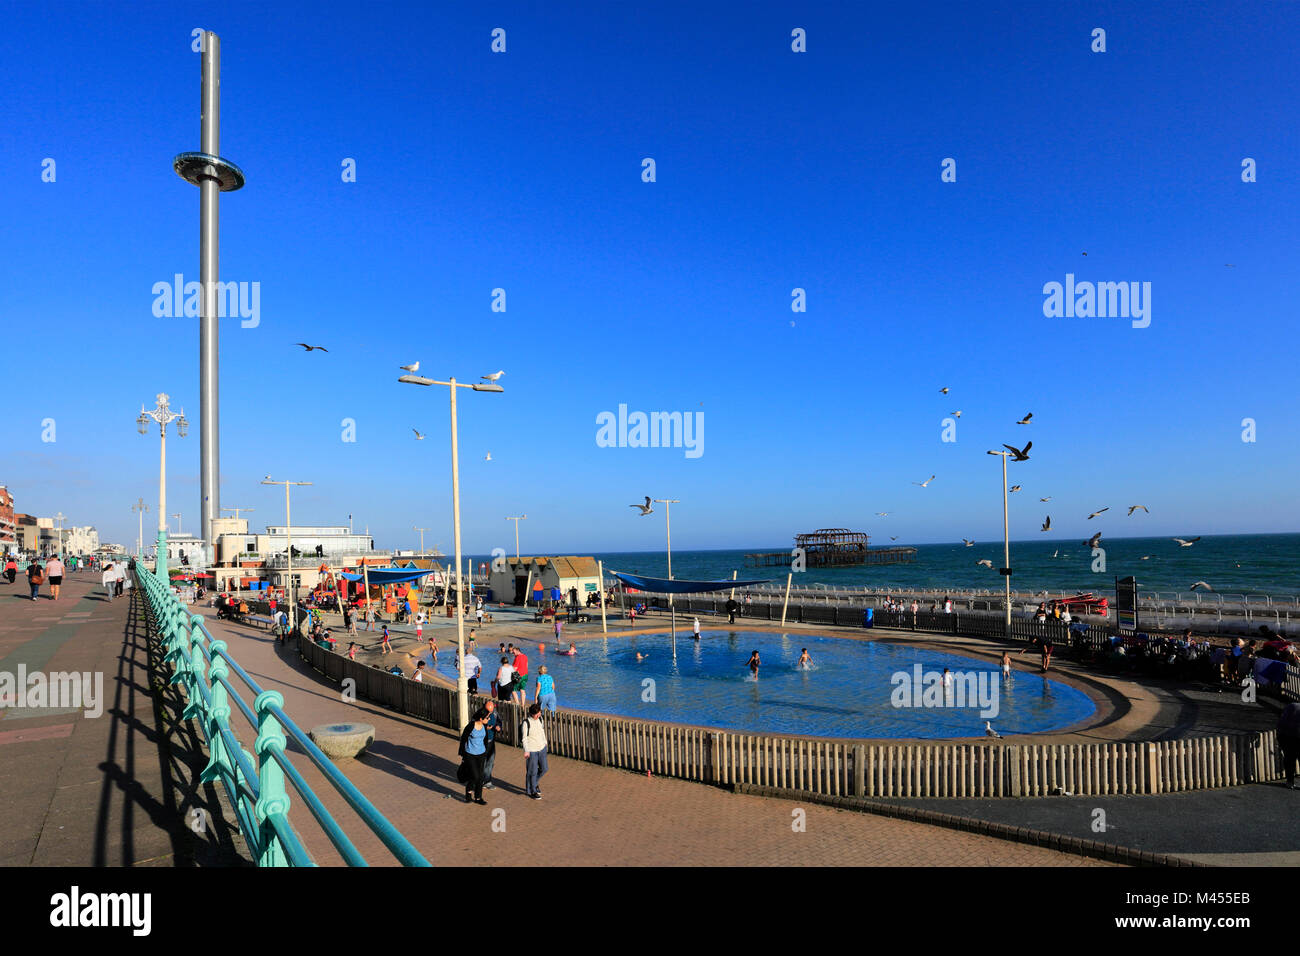 The British Airways i 360 observation tower, Brighton & Hove, Sussex, England, UK - Stock Image